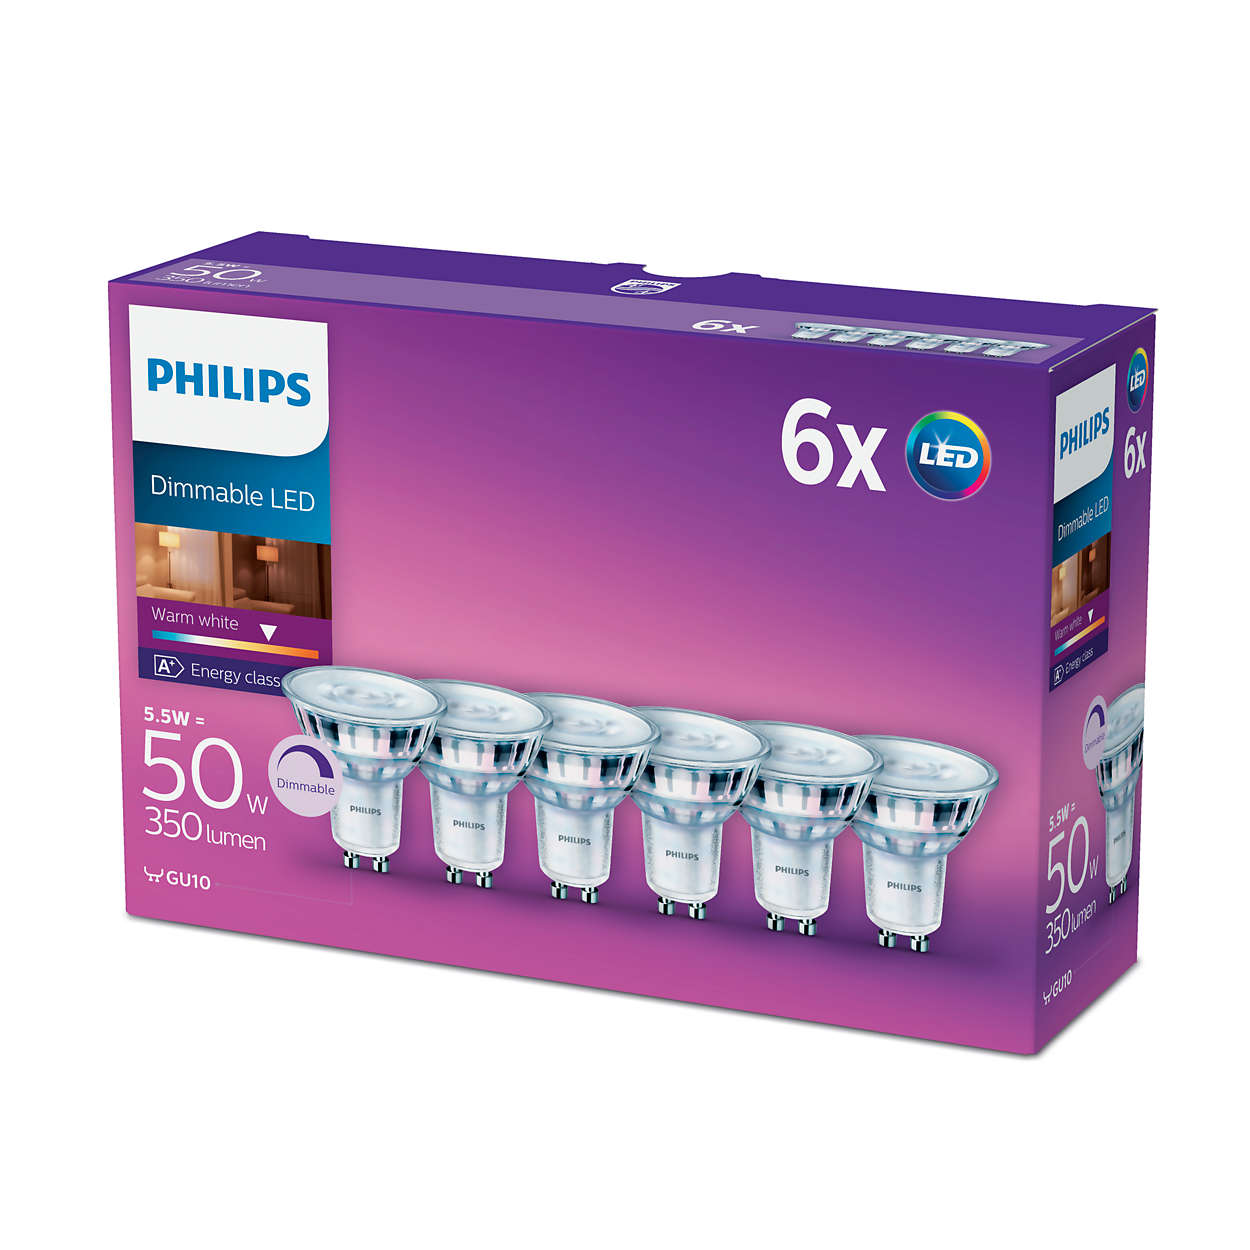 6pk philips led glass 50w a gu10 dimmable spot light bulb lamp 350lm warm white ebay. Black Bedroom Furniture Sets. Home Design Ideas